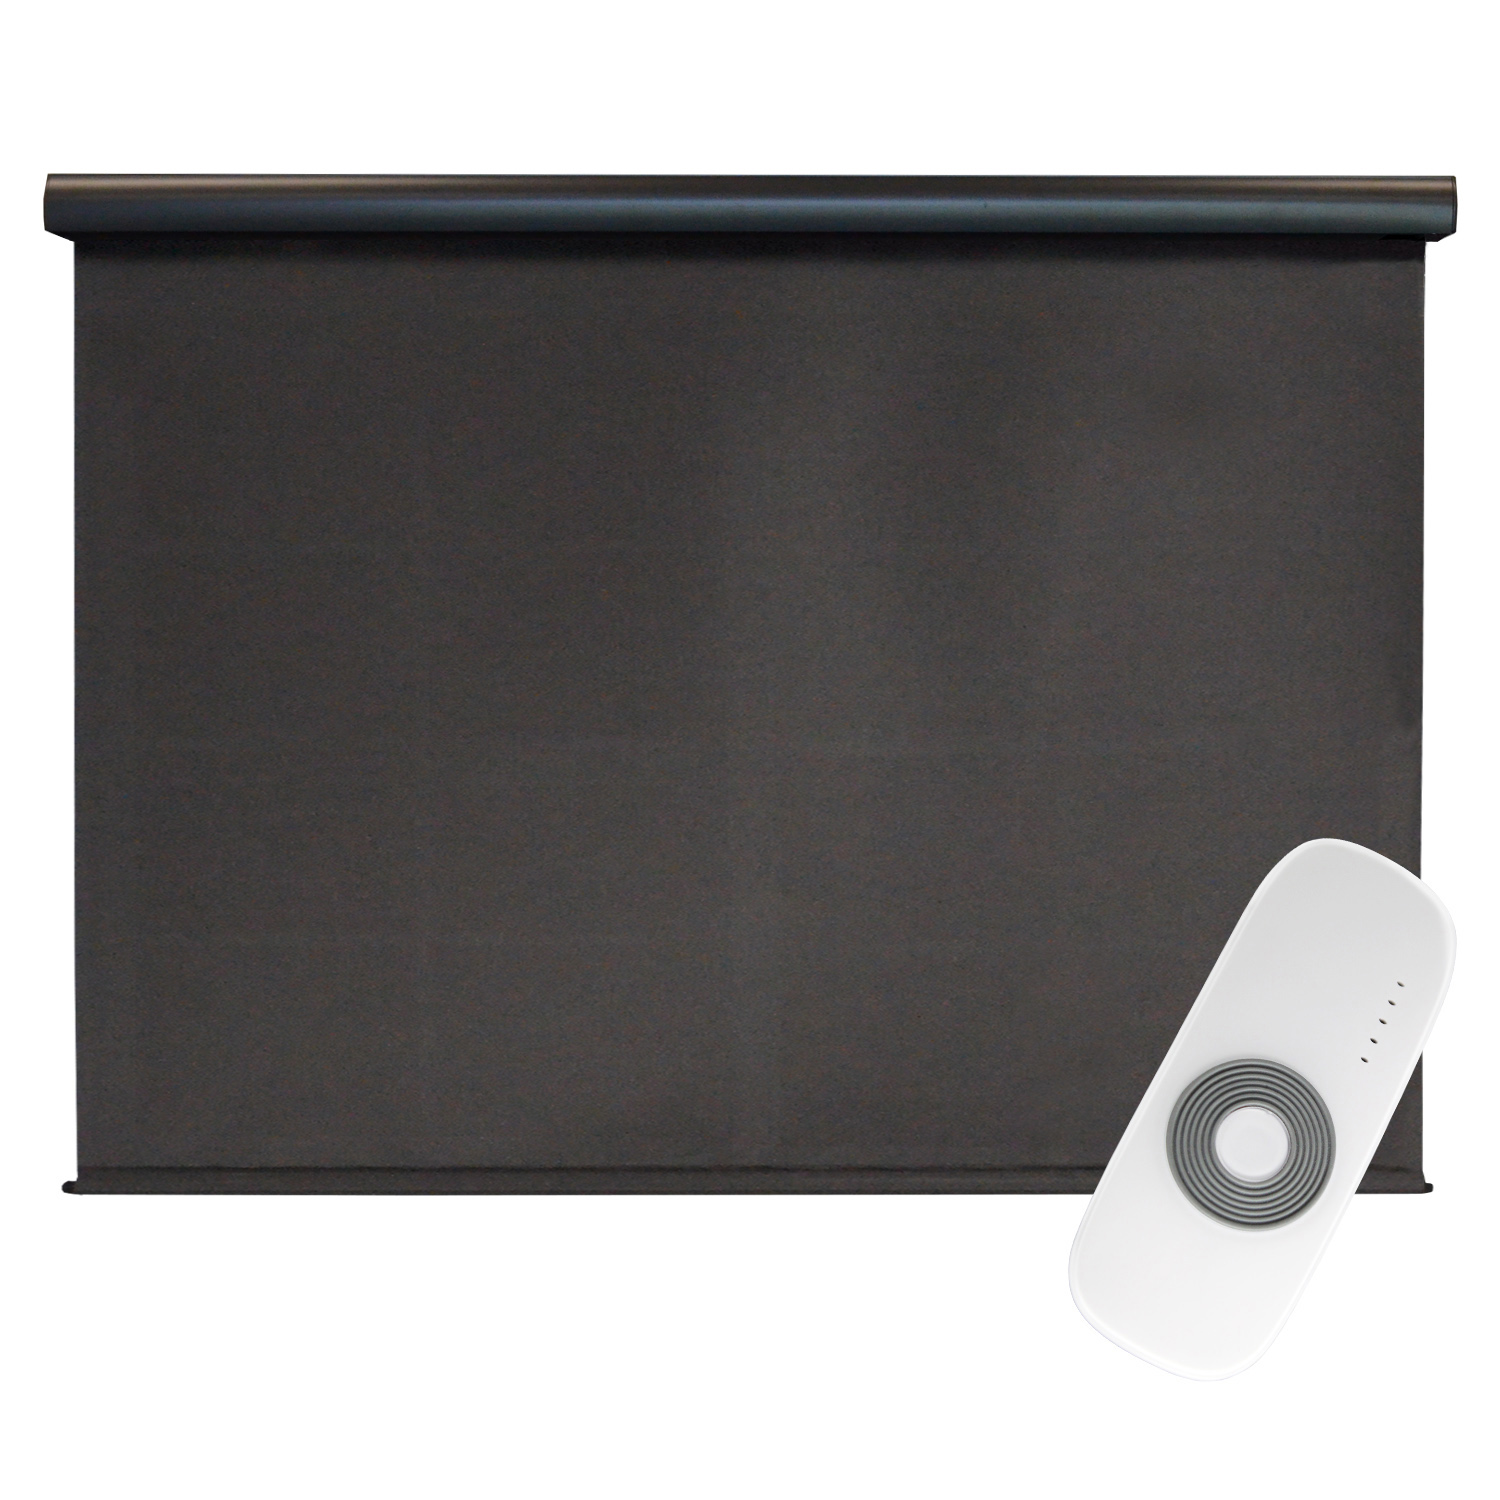 Premier Rechargeable Motorized Outdoor Sun Shade with Protective Valance, 8' W x 8' L, Mahogany